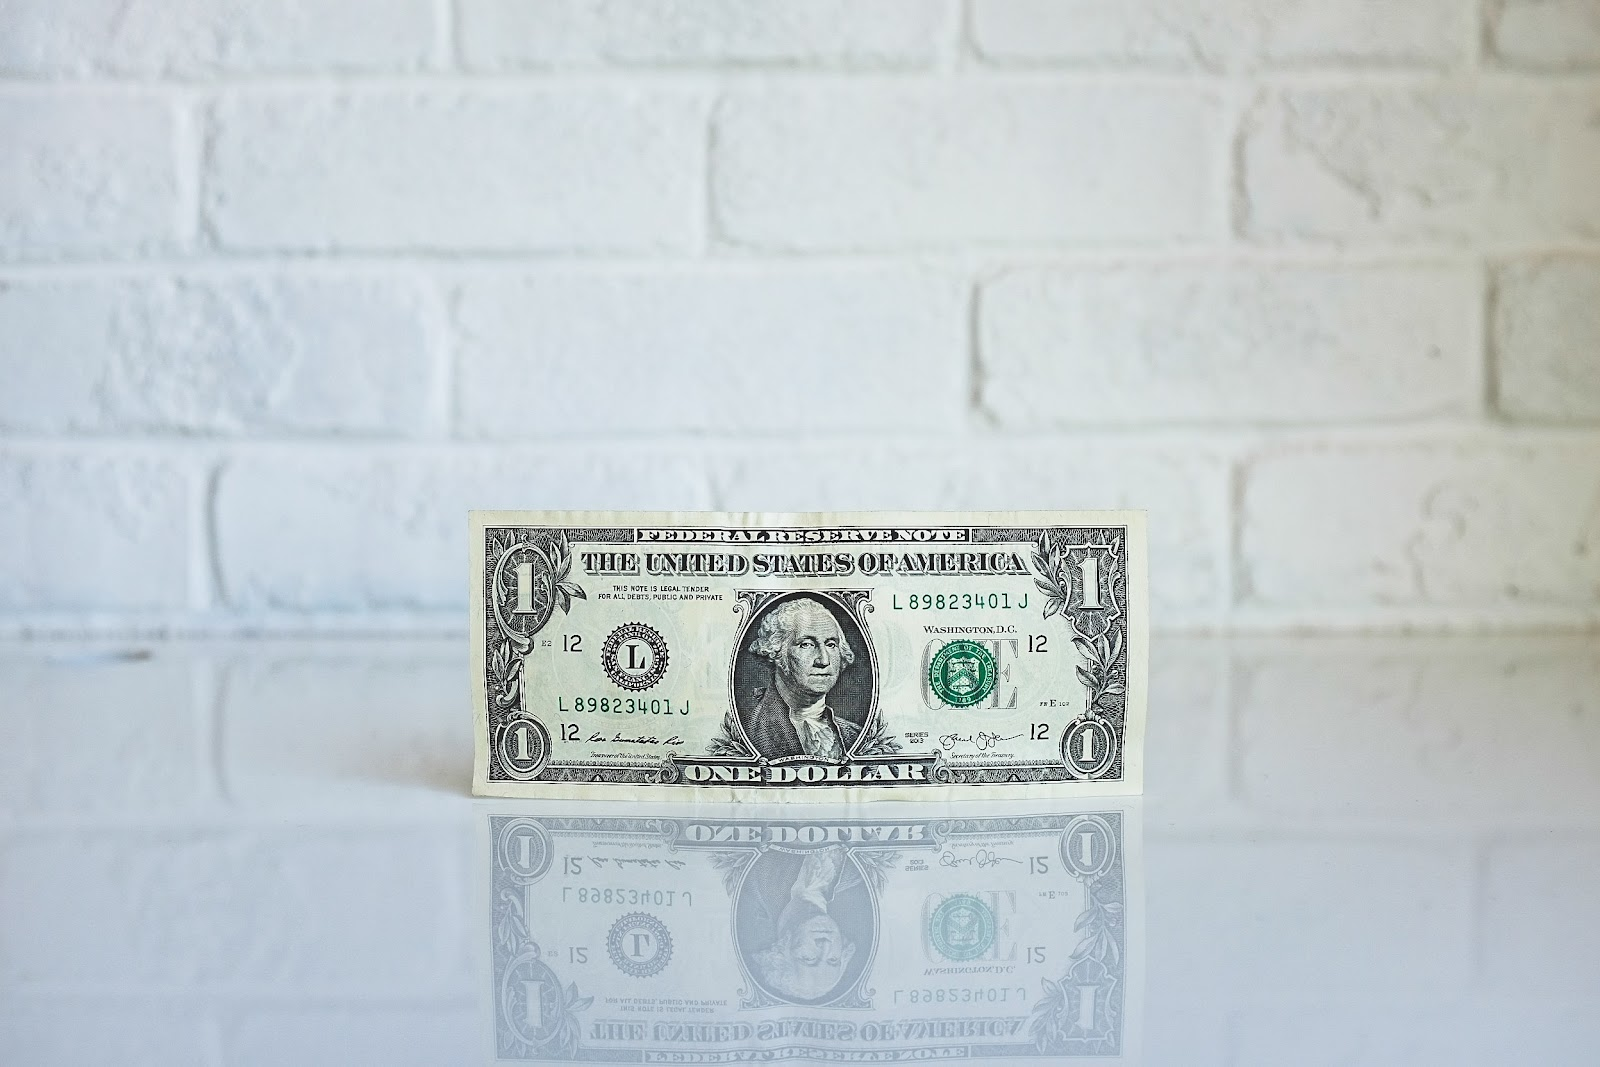 A photo of a dollar bill